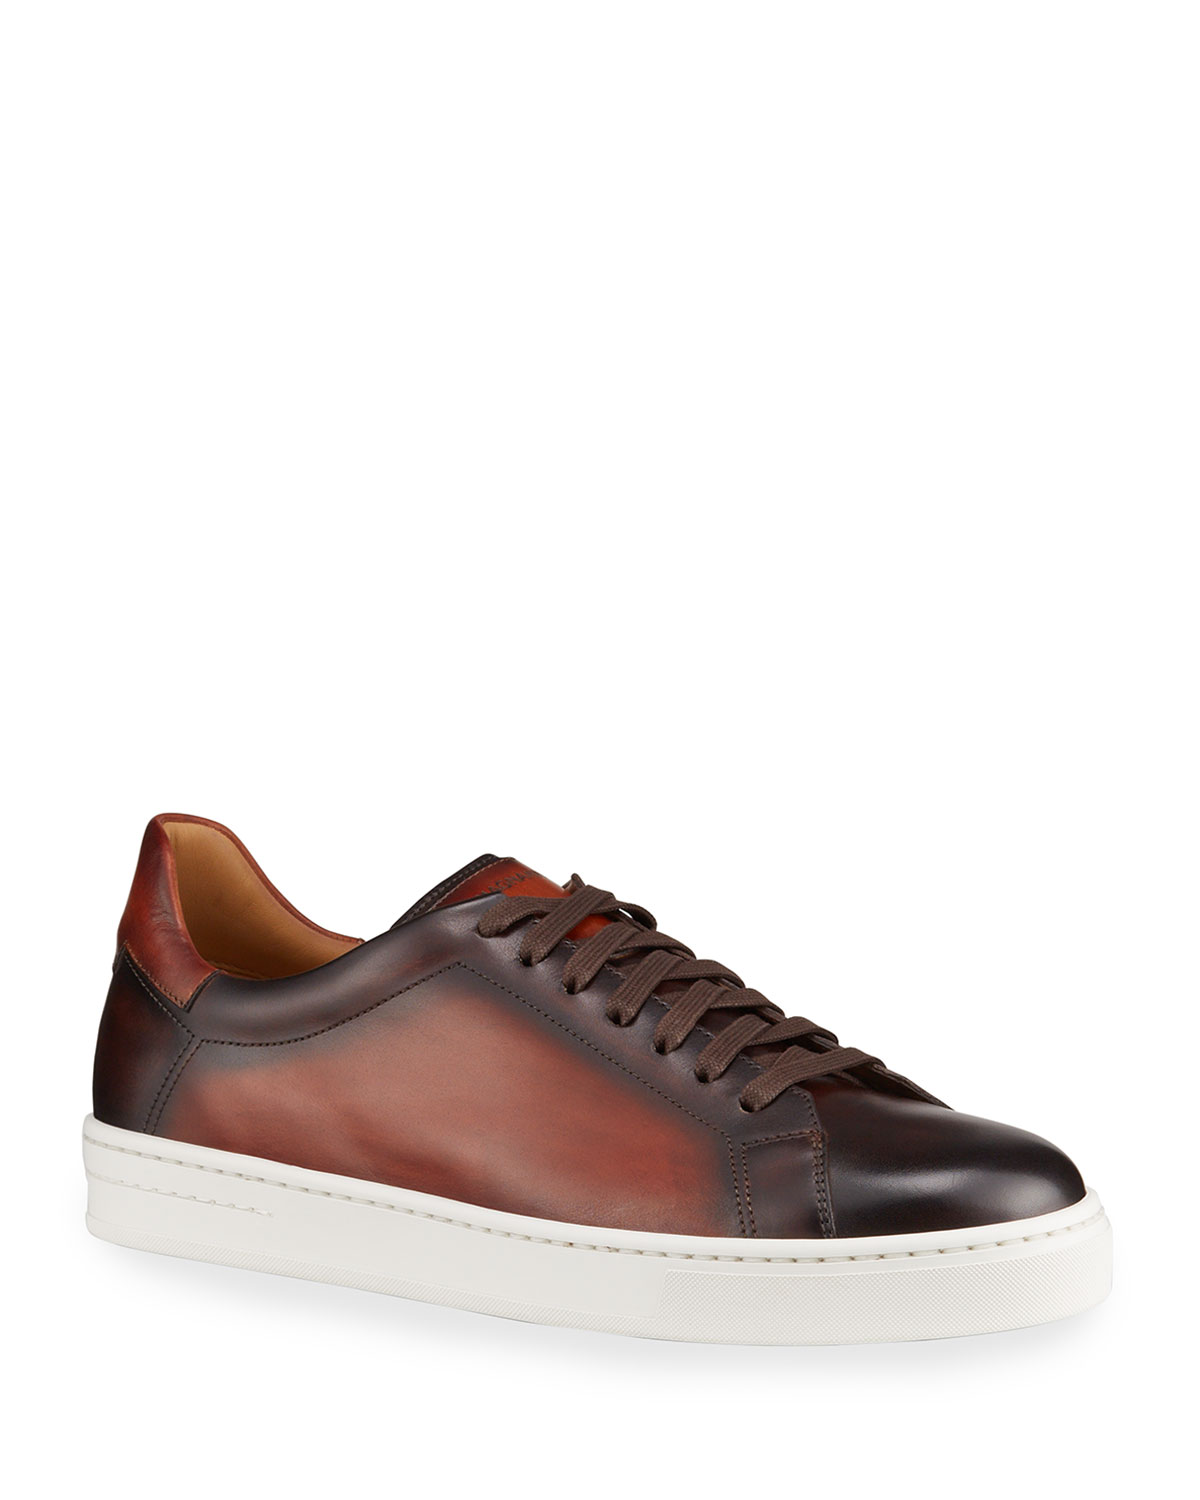 Men's Ottawa Burnished Leather Sneakers